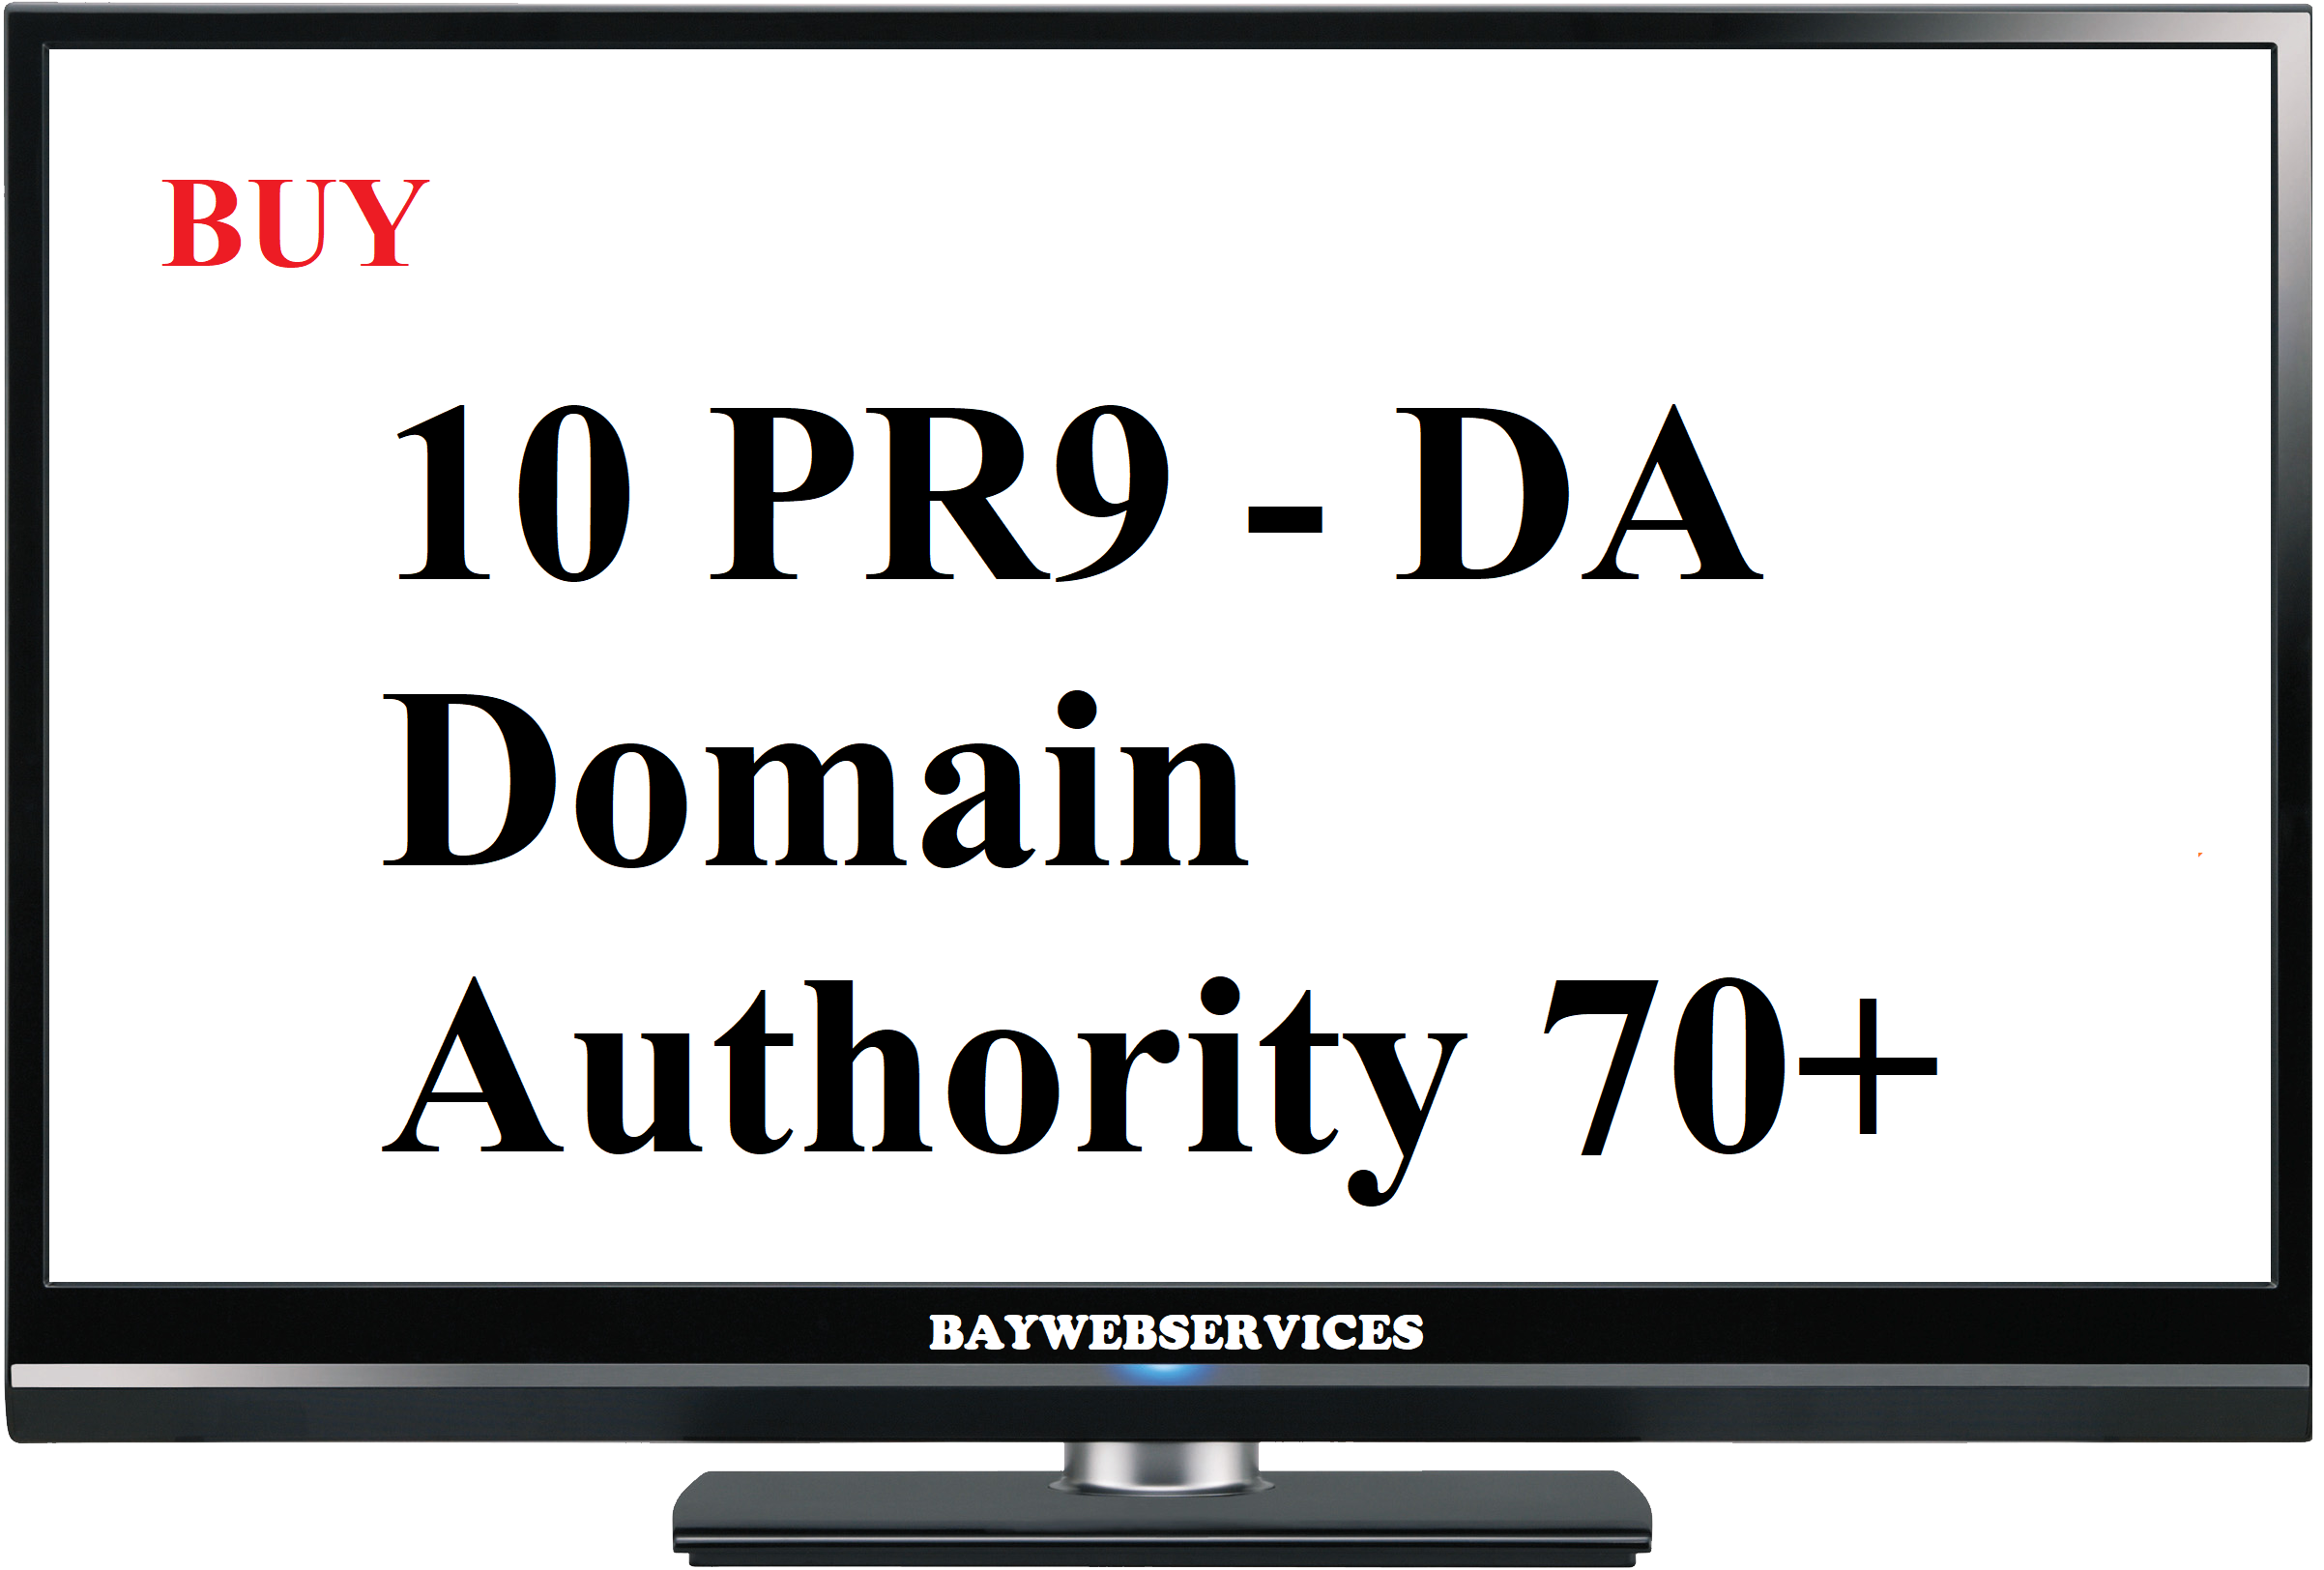 10 PR9 - DA (Domain Authority) 70+ Backlinks